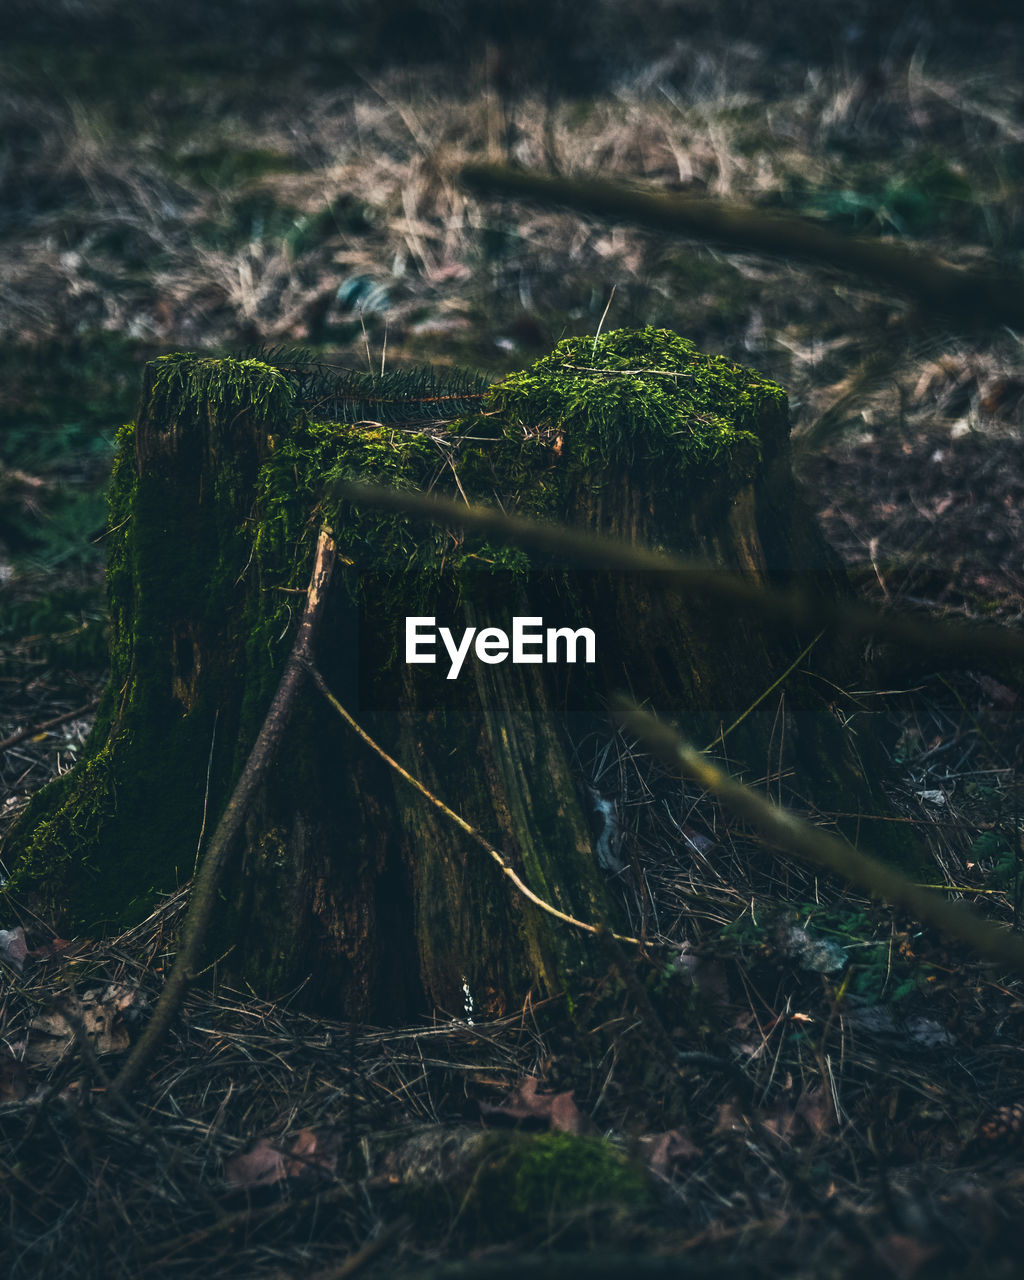 land, plant, nature, selective focus, tranquility, growth, no people, day, forest, tree, moss, field, close-up, beauty in nature, outdoors, green color, plant part, grass, falling, fallen tree, bark